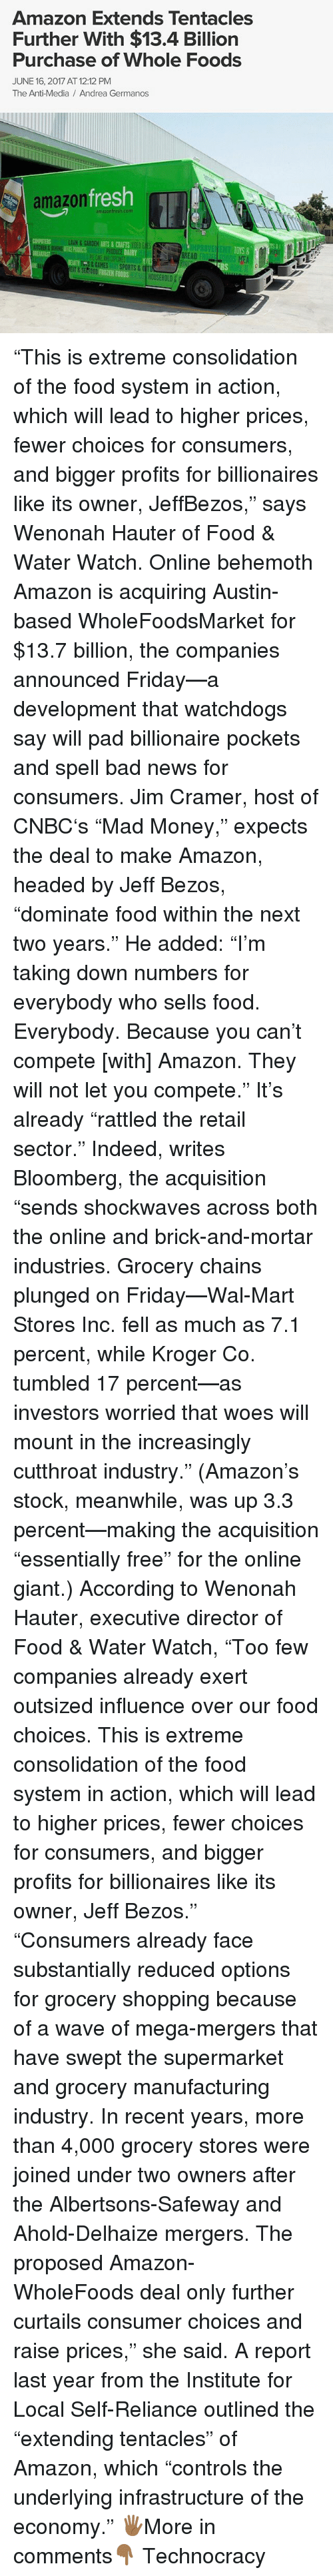 """Jim Cramer: Amazon Extends Tentacles  Further With $13.4 Billion  Purchase of Whole Foods  JUNE 16, 2017 AT12:12 PM  The Anti Media Andrea Germanos  fresh  amazon  lmazon resh com  ARTS & CAAFTS  MPROVE  TOYS &  DAIRY  BREAD  FROZEN FOODS  OUSEHOLD """"This is extreme consolidation of the food system in action, which will lead to higher prices, fewer choices for consumers, and bigger profits for billionaires like its owner, JeffBezos,"""" says Wenonah Hauter of Food & Water Watch. Online behemoth Amazon is acquiring Austin-based WholeFoodsMarket for $13.7 billion, the companies announced Friday—a development that watchdogs say will pad billionaire pockets and spell bad news for consumers. Jim Cramer, host of CNBC's """"Mad Money,"""" expects the deal to make Amazon, headed by Jeff Bezos, """"dominate food within the next two years."""" He added: """"I'm taking down numbers for everybody who sells food. Everybody. Because you can't compete [with] Amazon. They will not let you compete."""" It's already """"rattled the retail sector."""" Indeed, writes Bloomberg, the acquisition """"sends shockwaves across both the online and brick-and-mortar industries. Grocery chains plunged on Friday—Wal-Mart Stores Inc. fell as much as 7.1 percent, while Kroger Co. tumbled 17 percent—as investors worried that woes will mount in the increasingly cutthroat industry."""" (Amazon's stock, meanwhile, was up 3.3 percent—making the acquisition """"essentially free"""" for the online giant.) According to Wenonah Hauter, executive director of Food & Water Watch, """"Too few companies already exert outsized influence over our food choices. This is extreme consolidation of the food system in action, which will lead to higher prices, fewer choices for consumers, and bigger profits for billionaires like its owner, Jeff Bezos."""" """"Consumers already face substantially reduced options for grocery shopping because of a wave of mega-mergers that have swept the supermarket and grocery manufacturing industry. In recent years, more than 4,000 groce"""